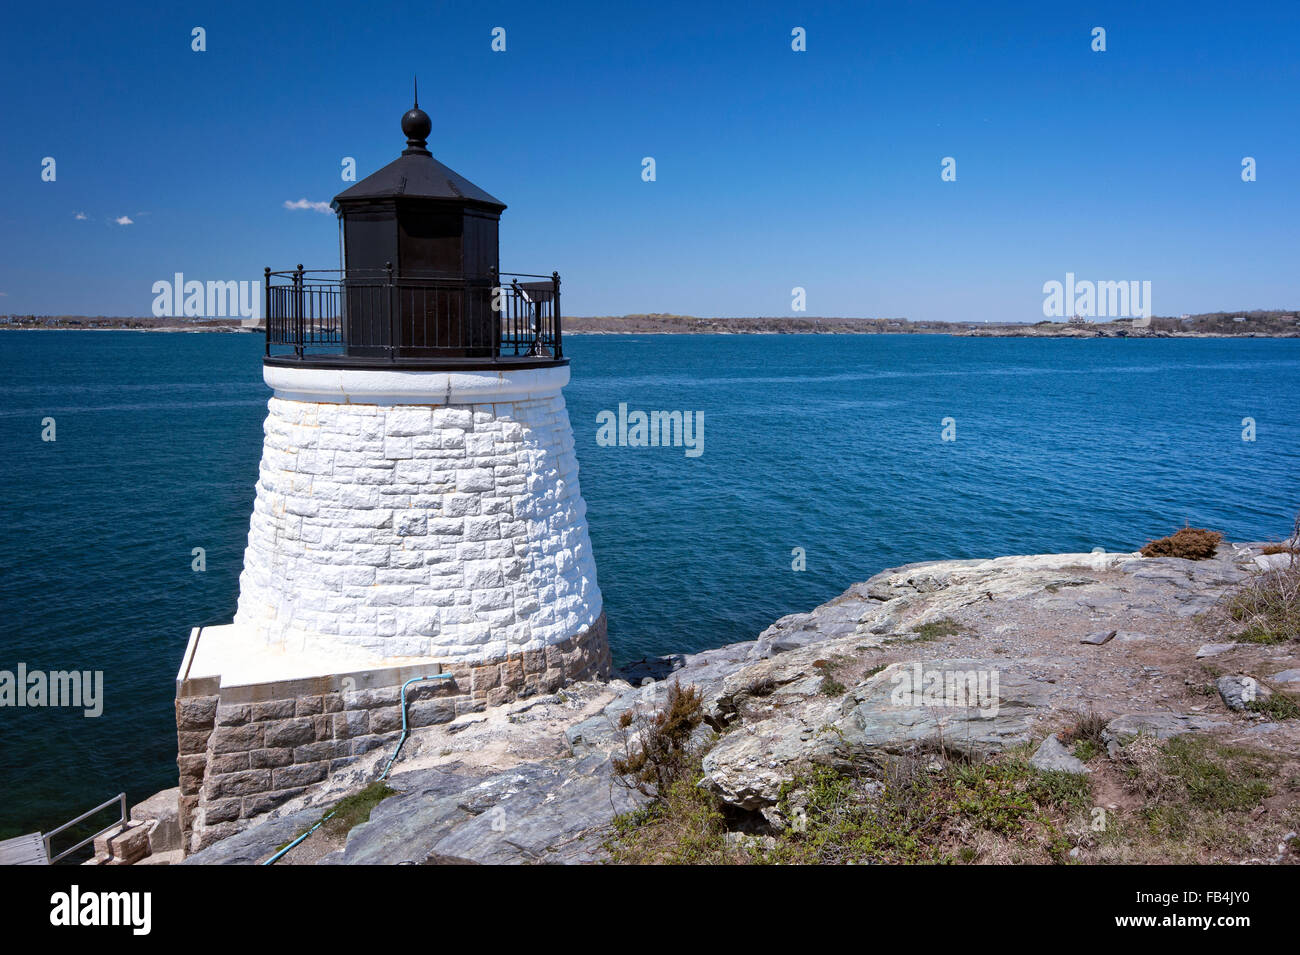 Stone tower of Castle Hill lighthouse, built on a rocky cliff, overlooking Narragansett Bay on a summer day in Newport, - Stock Image